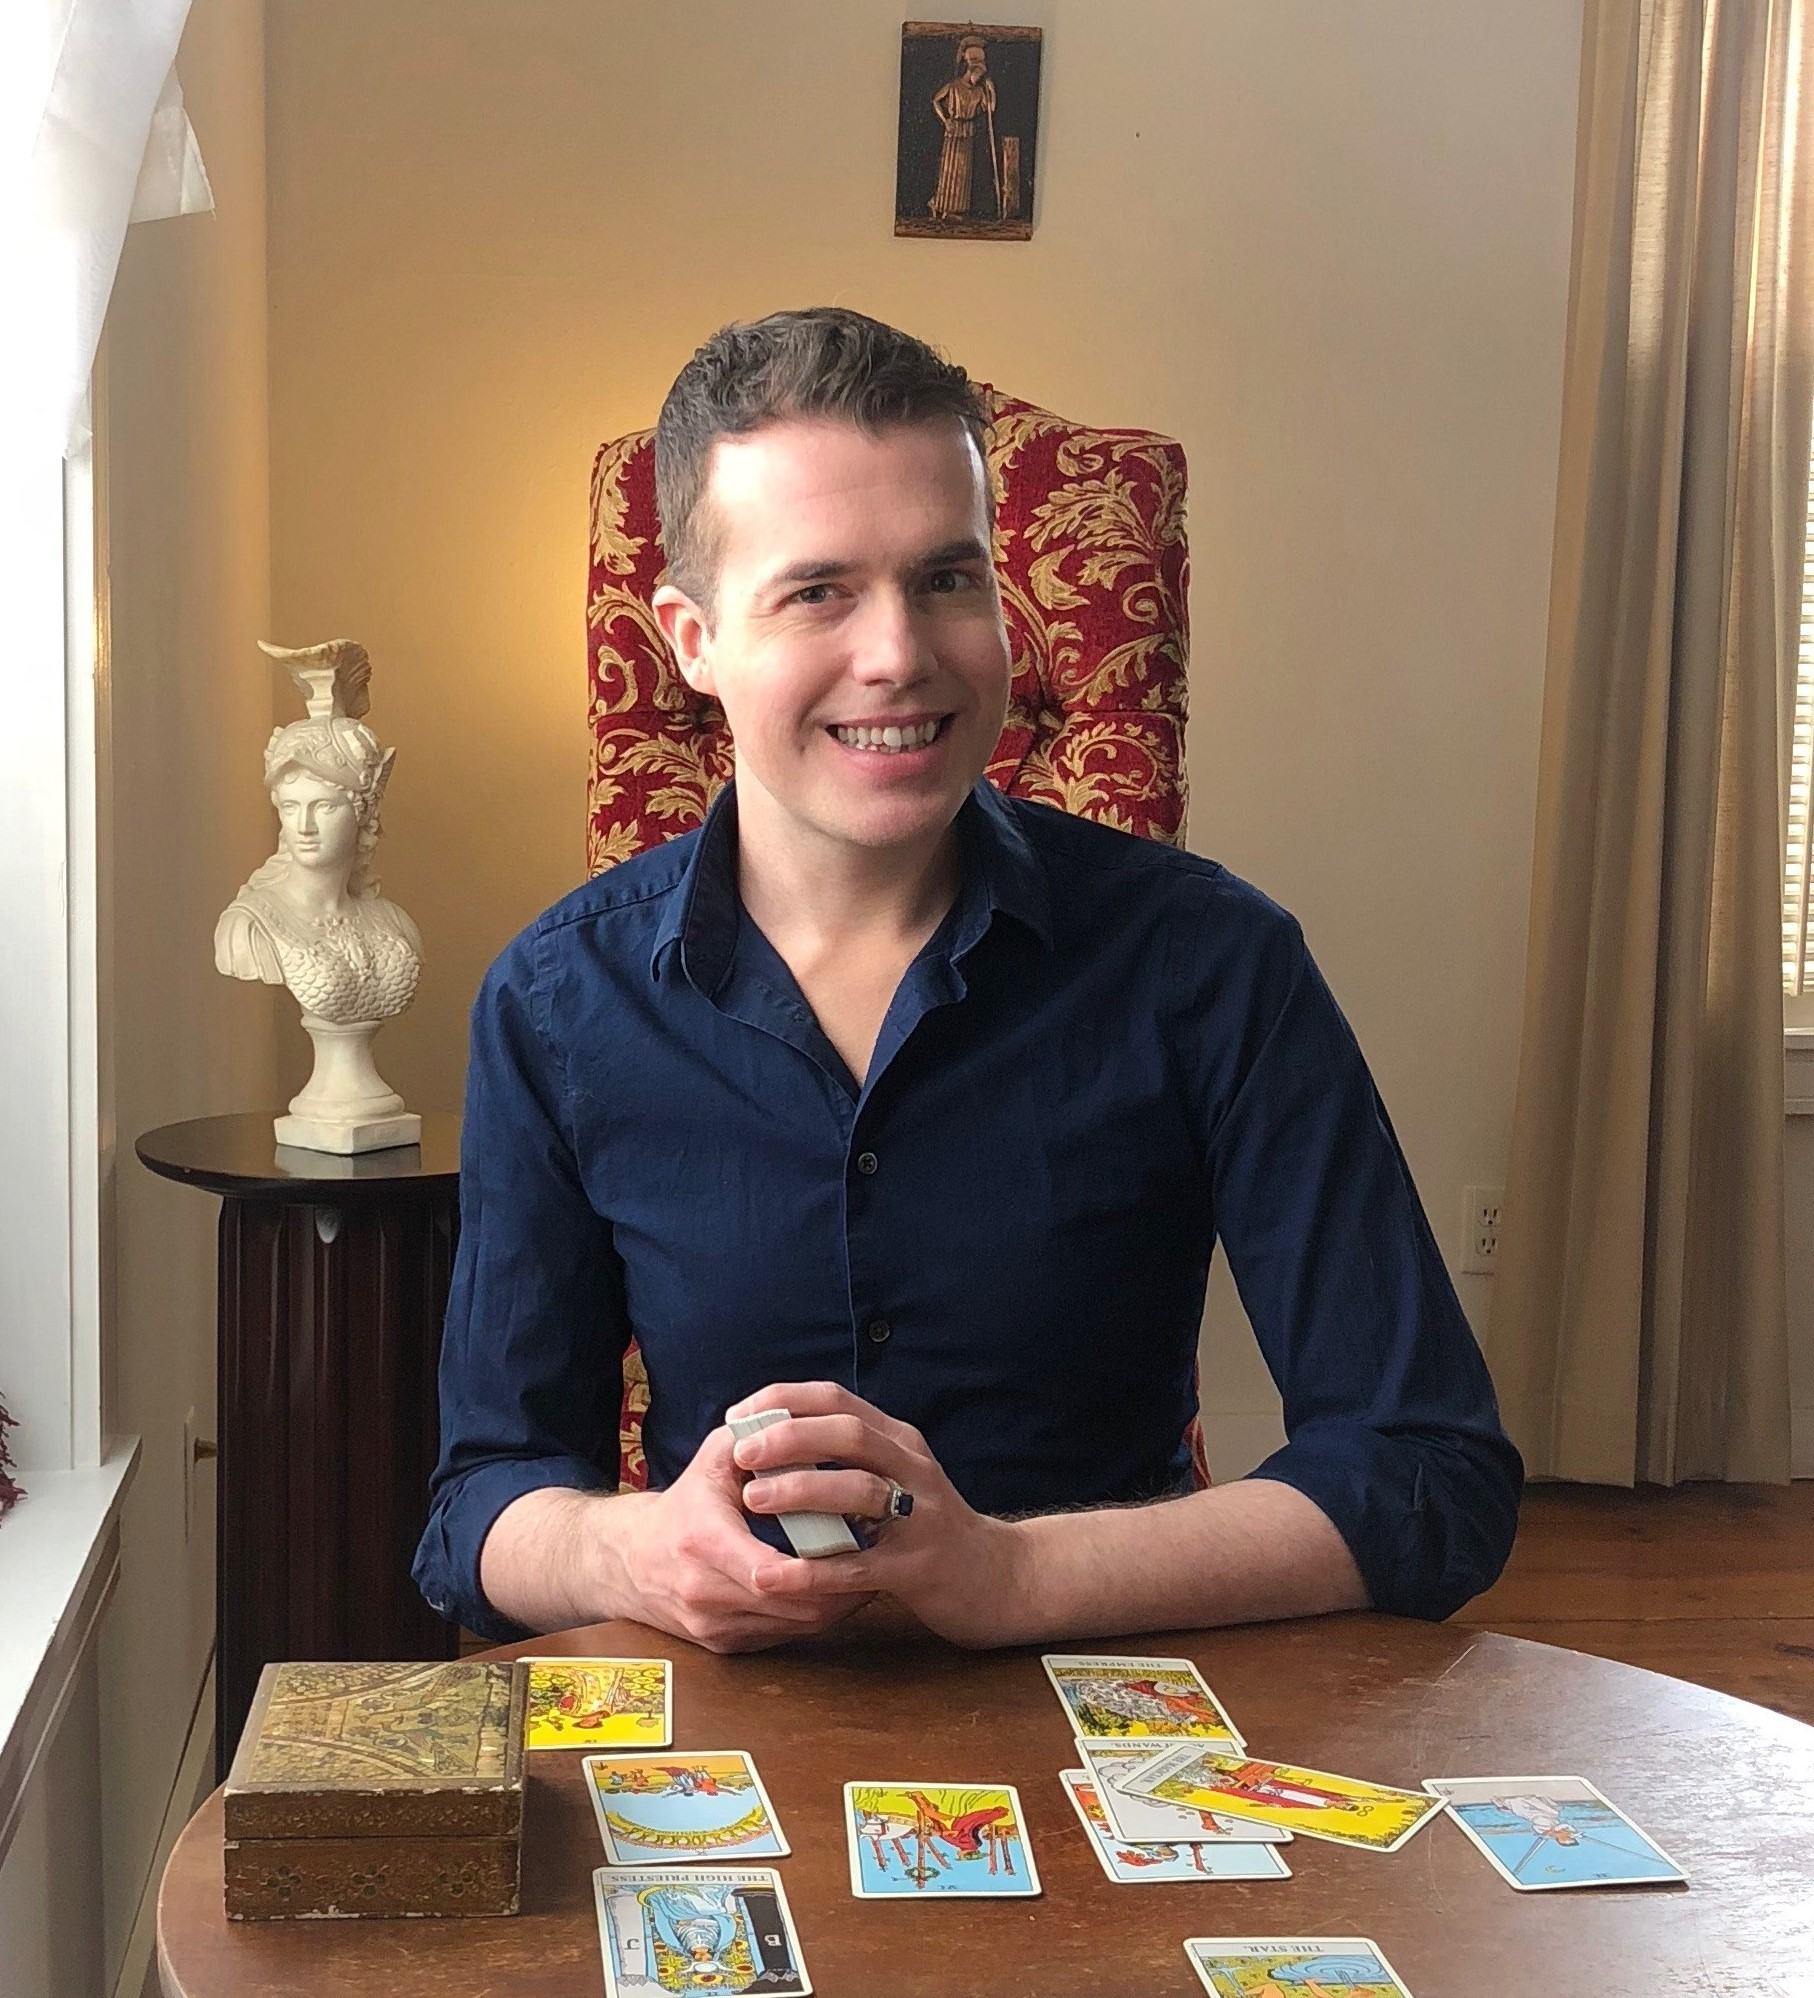 Meet Elliot - Dr. Elliot Adam is a tarot specialist originally from the Metro-Milwaukee area. He currently operates the tarot website ElliotOracle.com, providing readings for clients from all over the world. From 2000-2005, he owned Athena's Oracle, a divination specialty shop, located in the heart of Milwaukee's historic East-Side. For over twenty years, Elliot has performed thousands of readings. He is known for his empowering, clear, and remarkably accurate consultations. Aside from tarot, Elliot's interests include ancient Greek language, religion, history, and classical music. In 2016, he earned his doctoral degree in classical oboe.